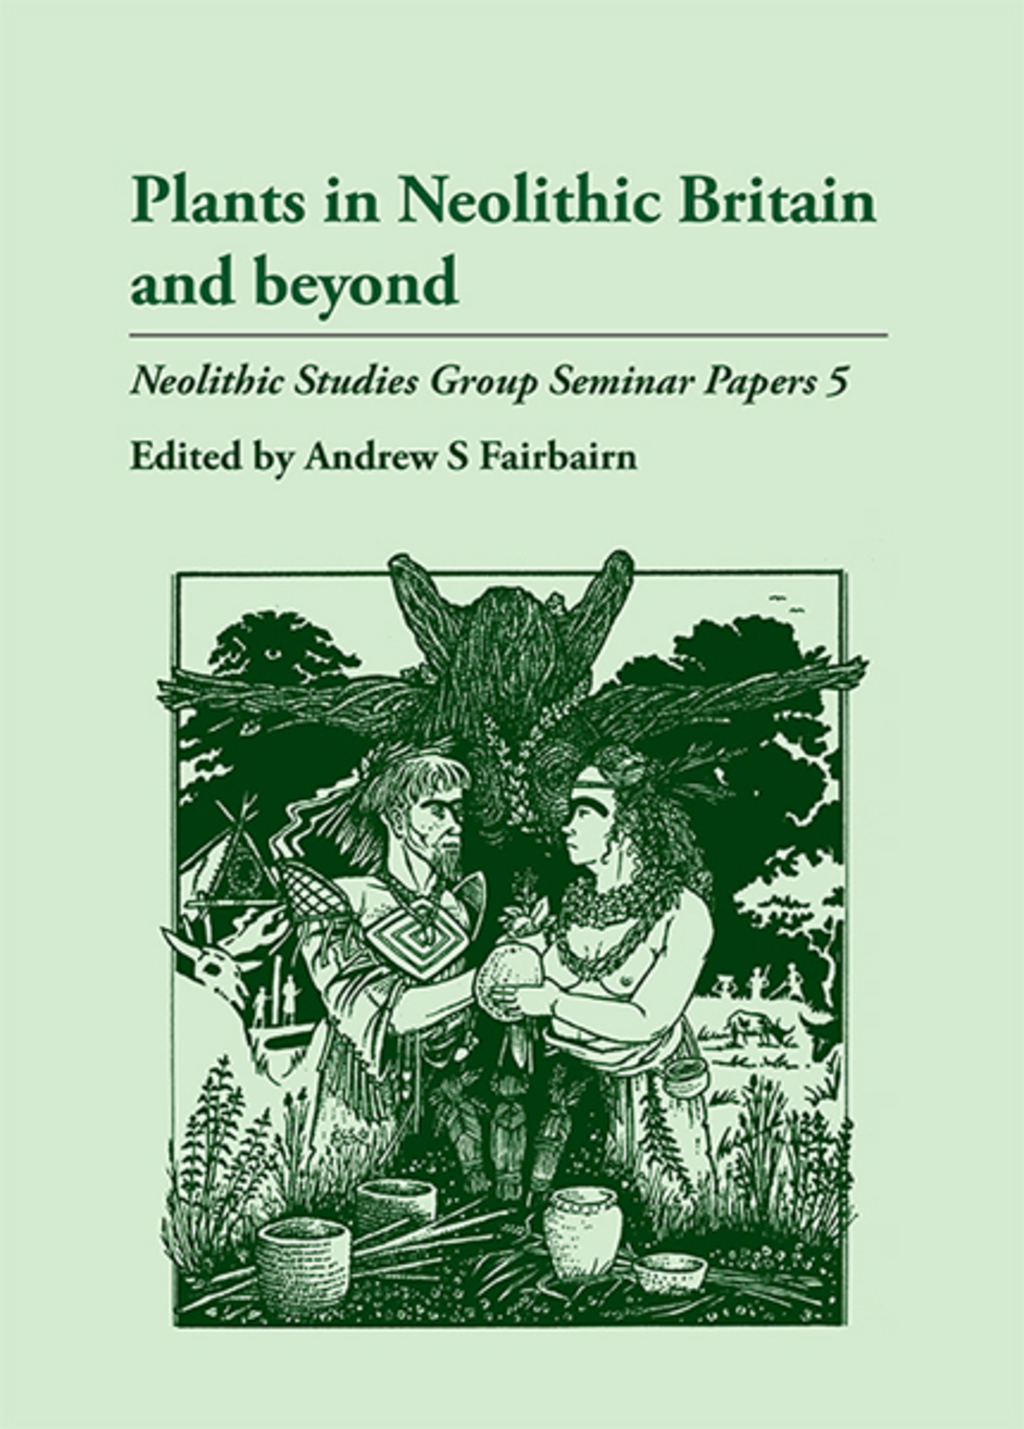 Plants in Neolithic Britain and Beyond (ebook) eBooks